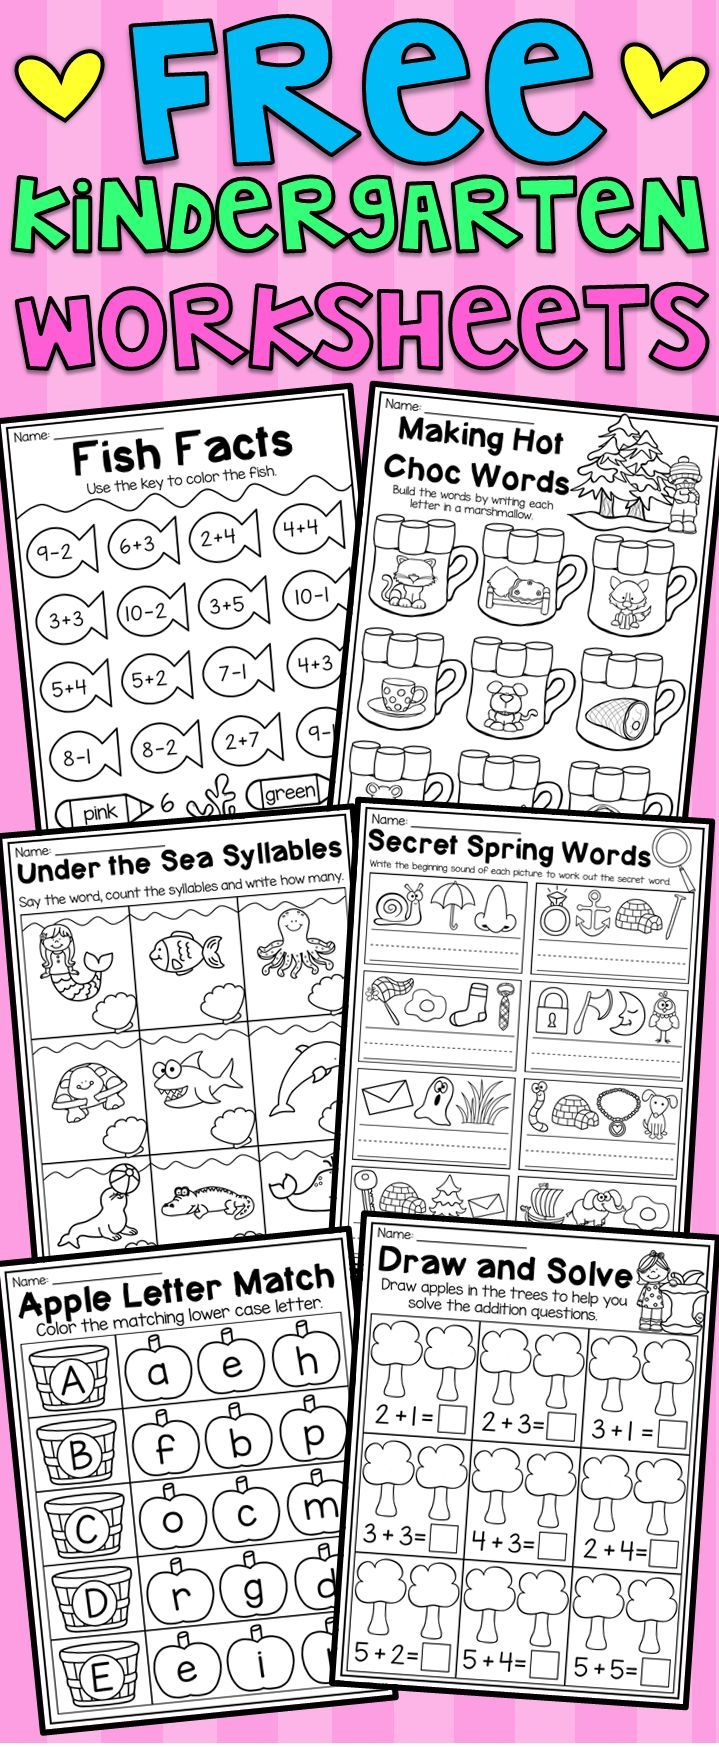 Free Kindergarten Seasonal Worksheets - Math And Literacy